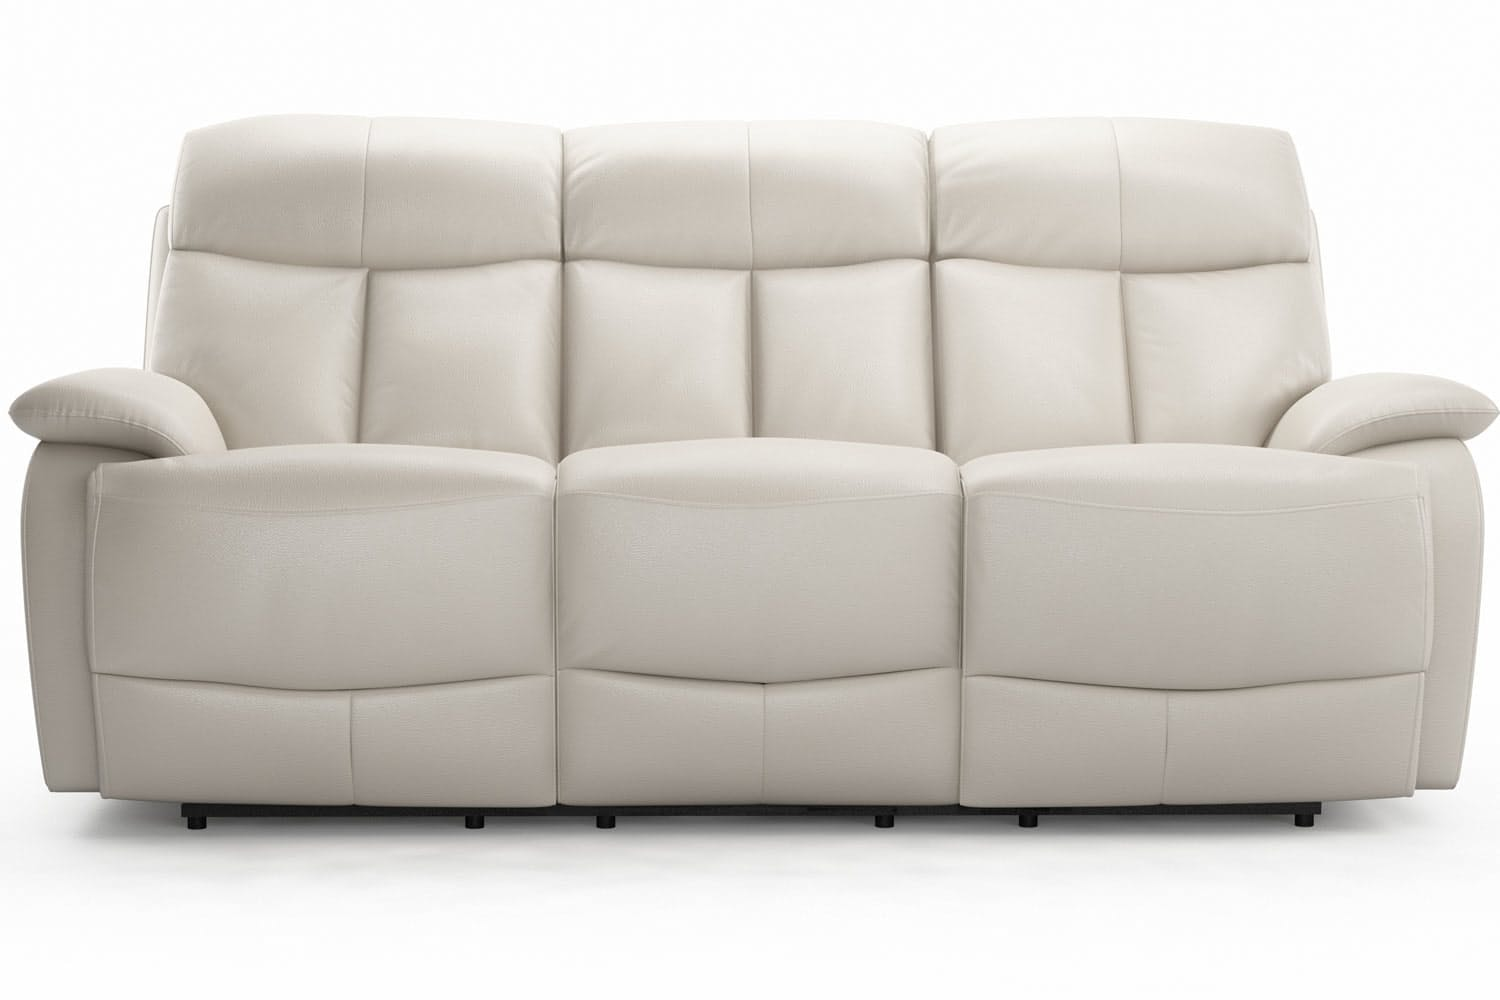 Seline 3 Seater Leather Recliner Sofa